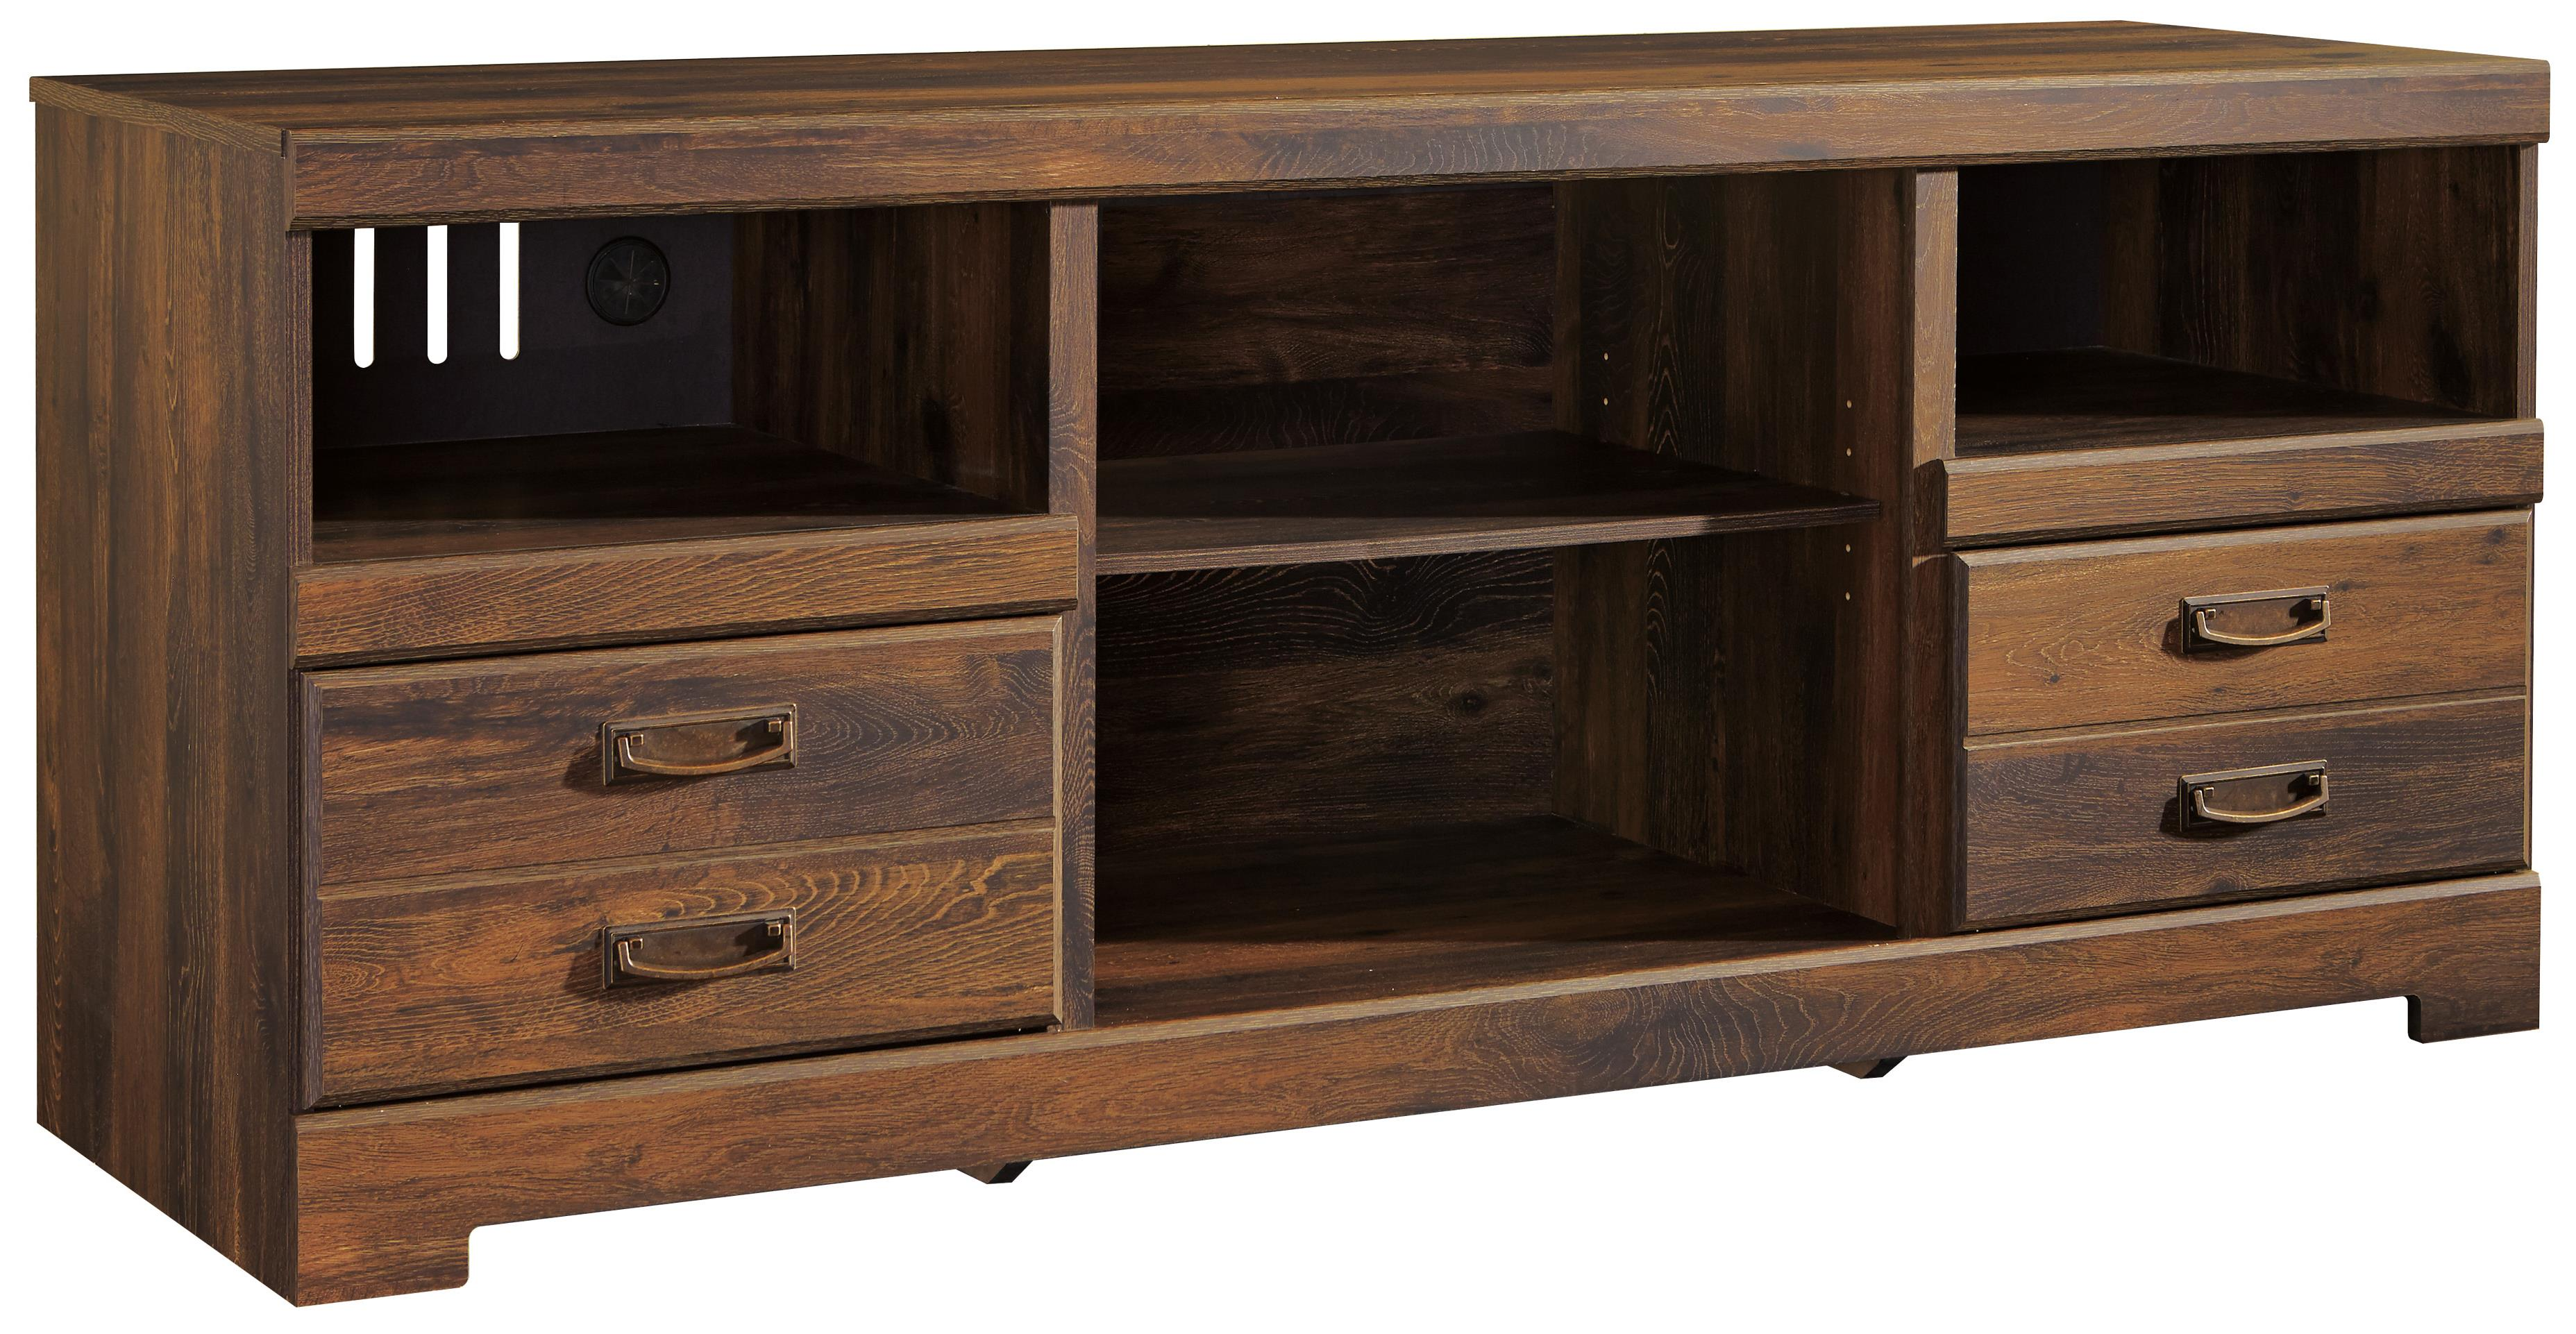 Signature Design by Ashley Quinden Large TV Stand - Item Number: W246-68